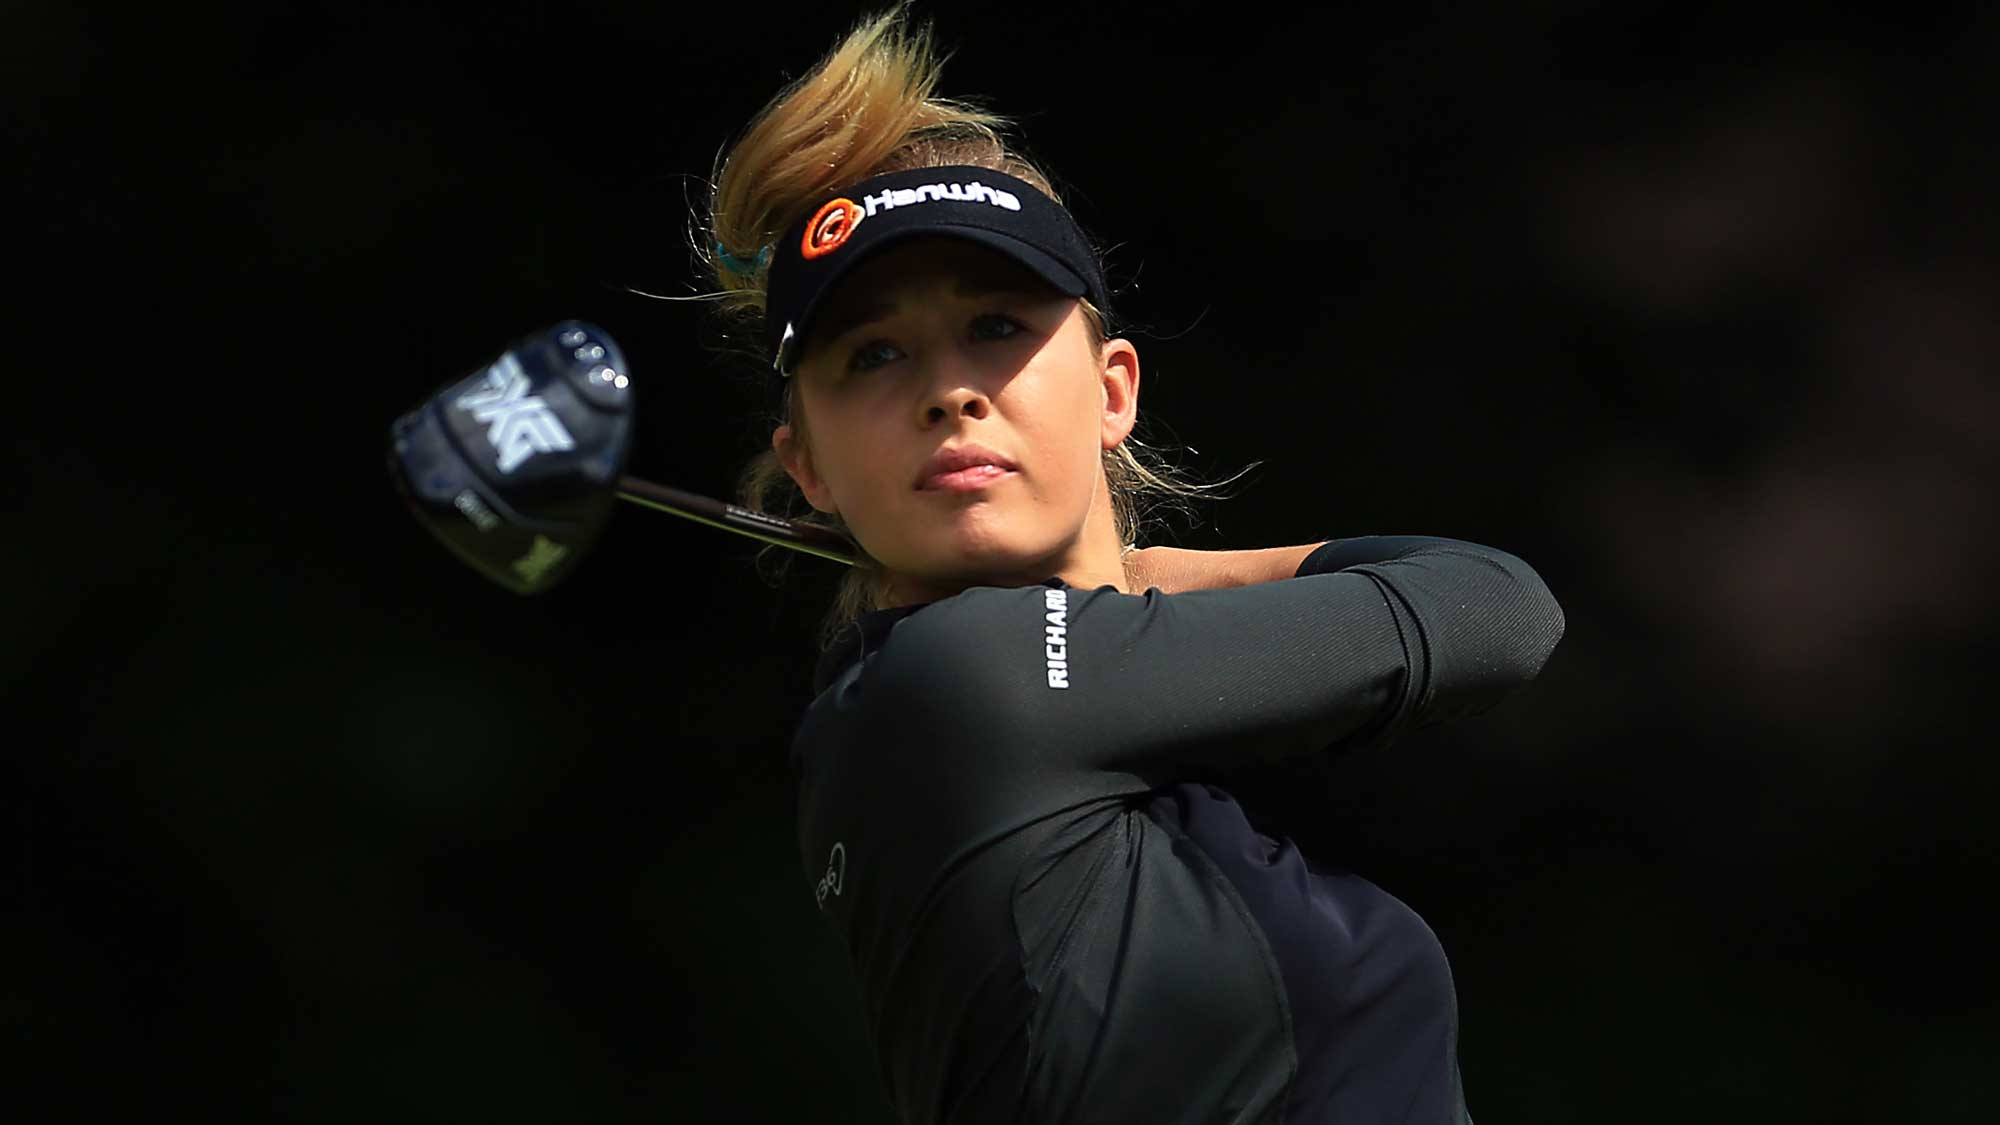 Nelly Korda of the United States hits her tee shot on the 4th hole during the final round of the Canadian Pacific Women's Open